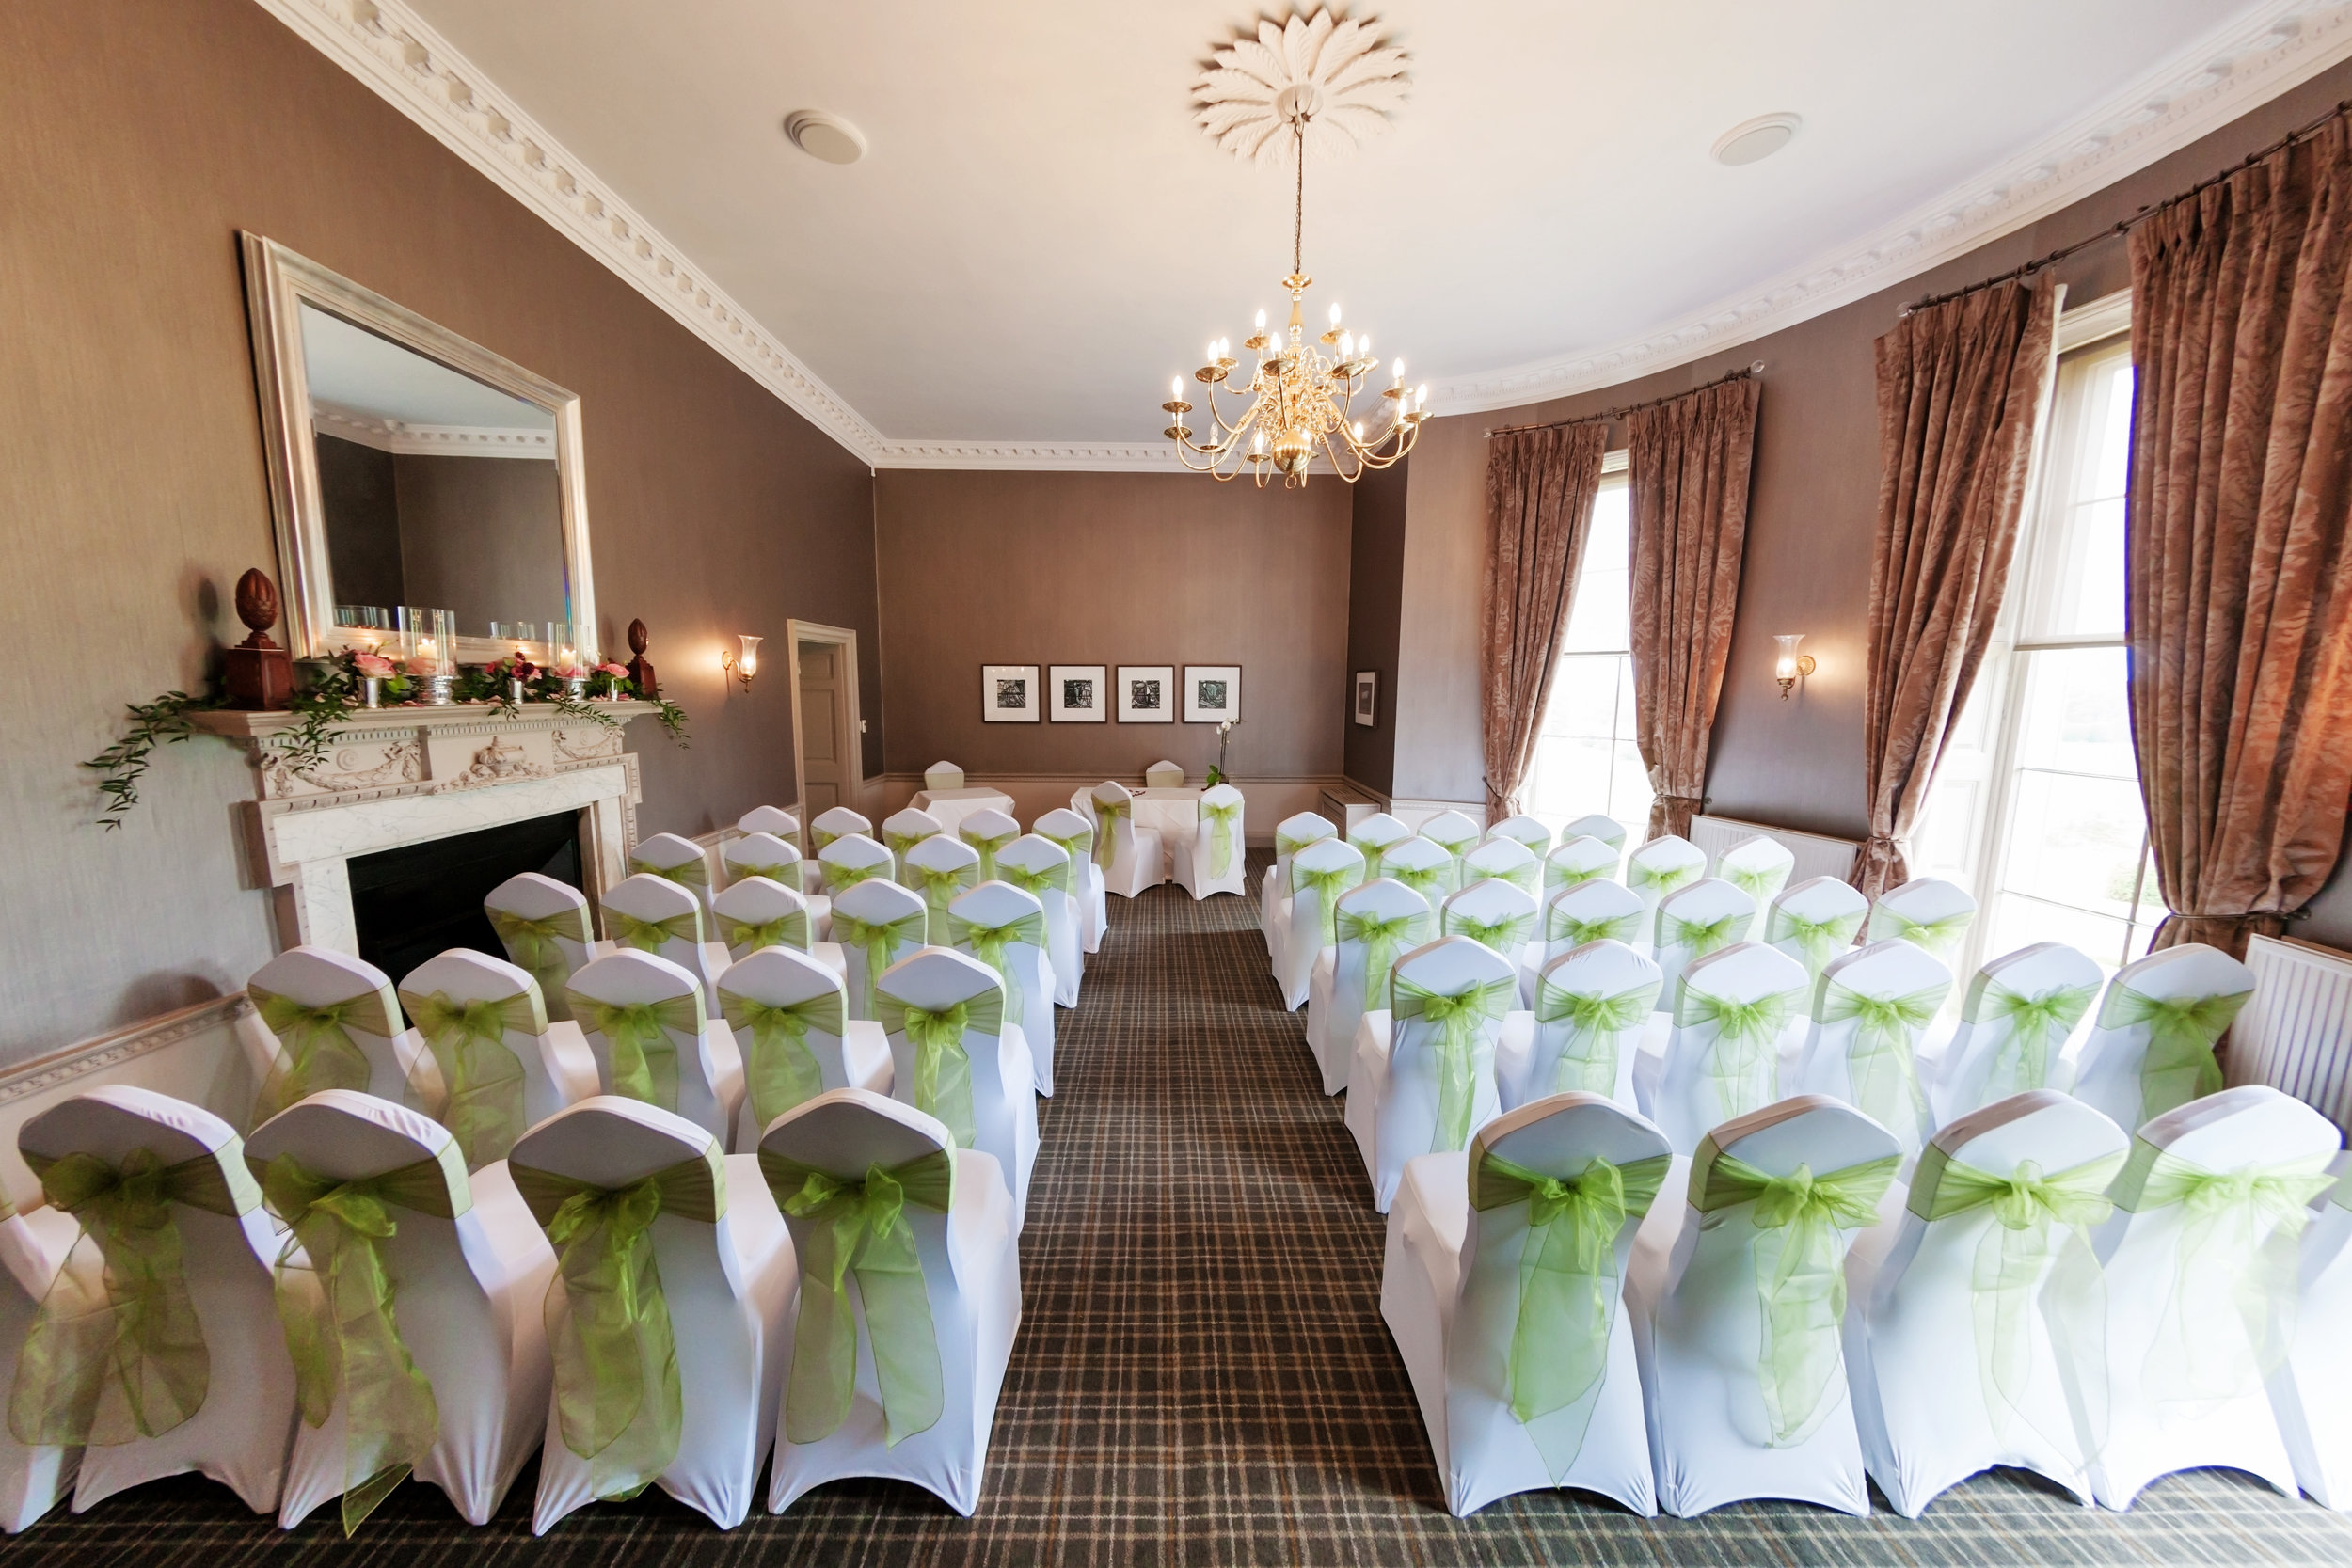 Length wise layout with long aisle and table at the far end of the room.